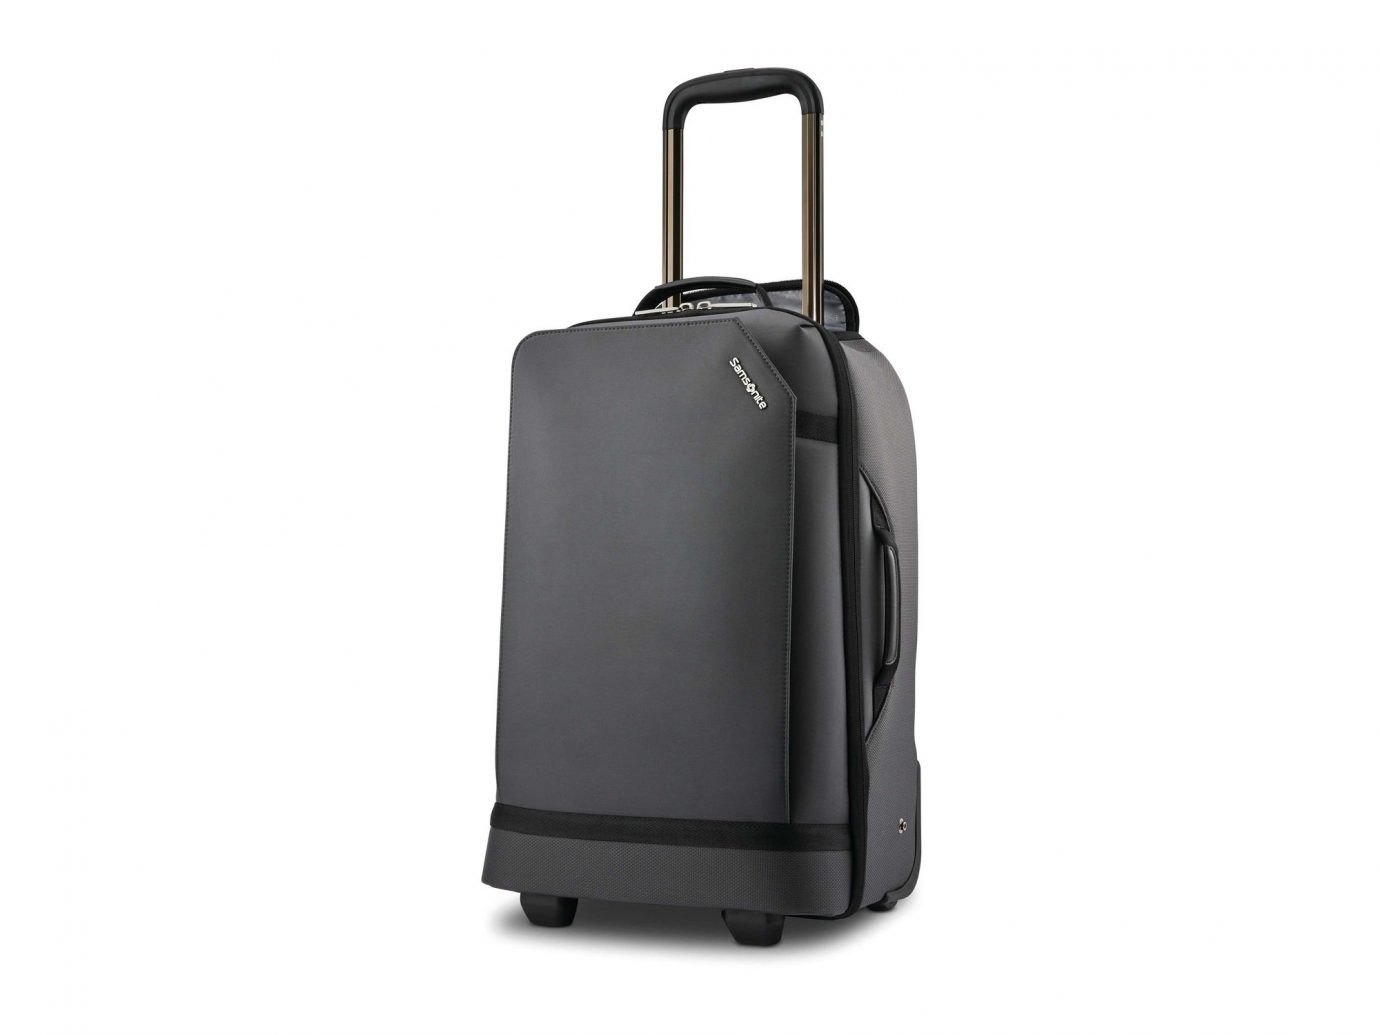 Samsonite Encompass Convertible Wheeled Backpack